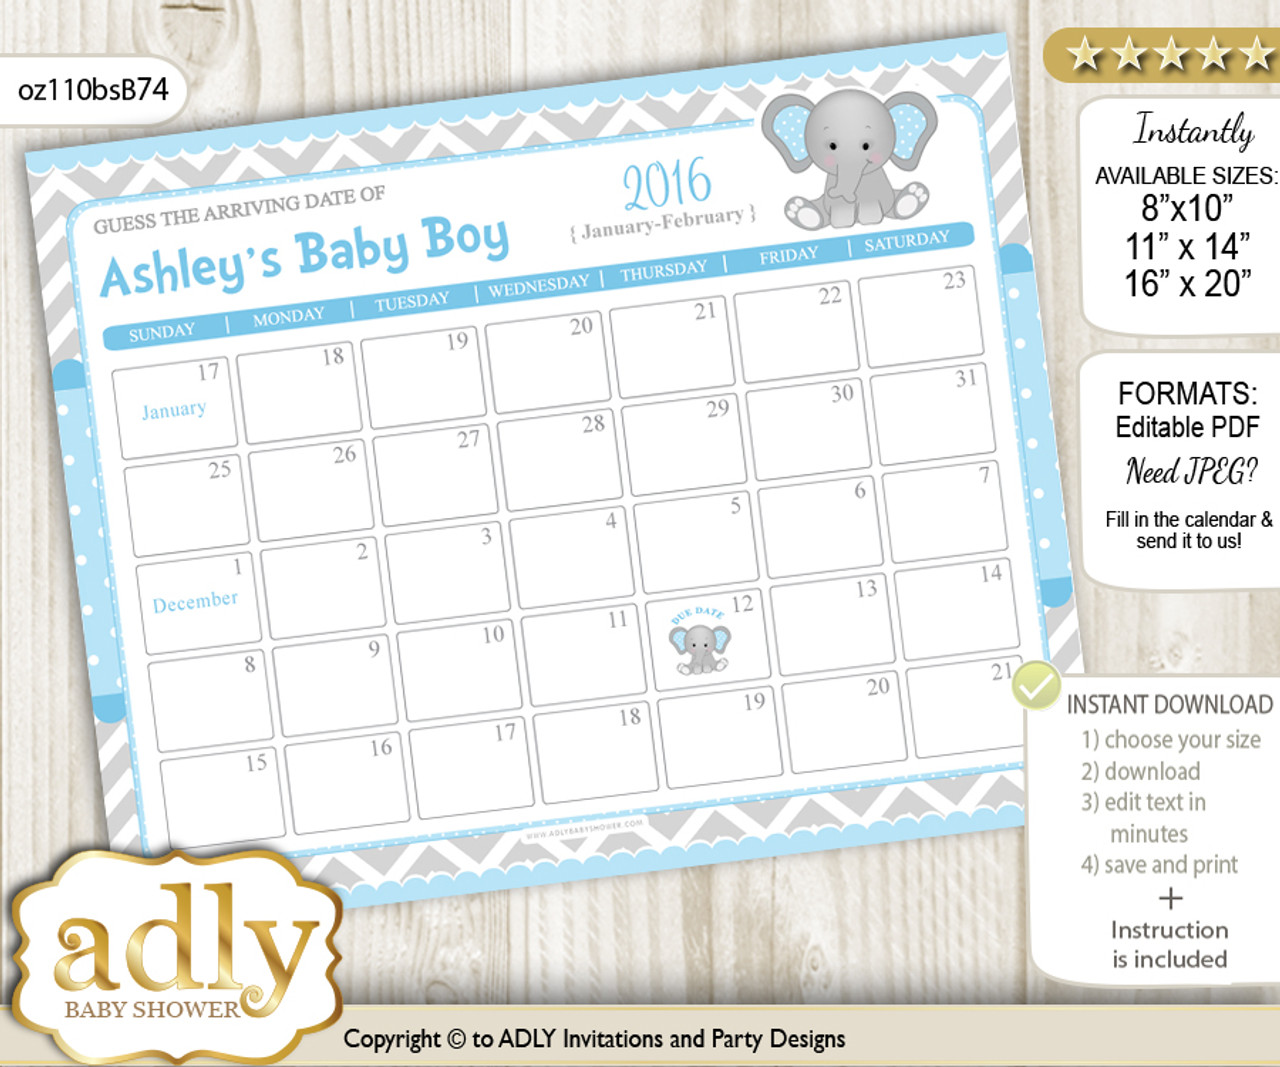 Baby Due Date Calendar Guess Baby Arrival Date Game ADLY